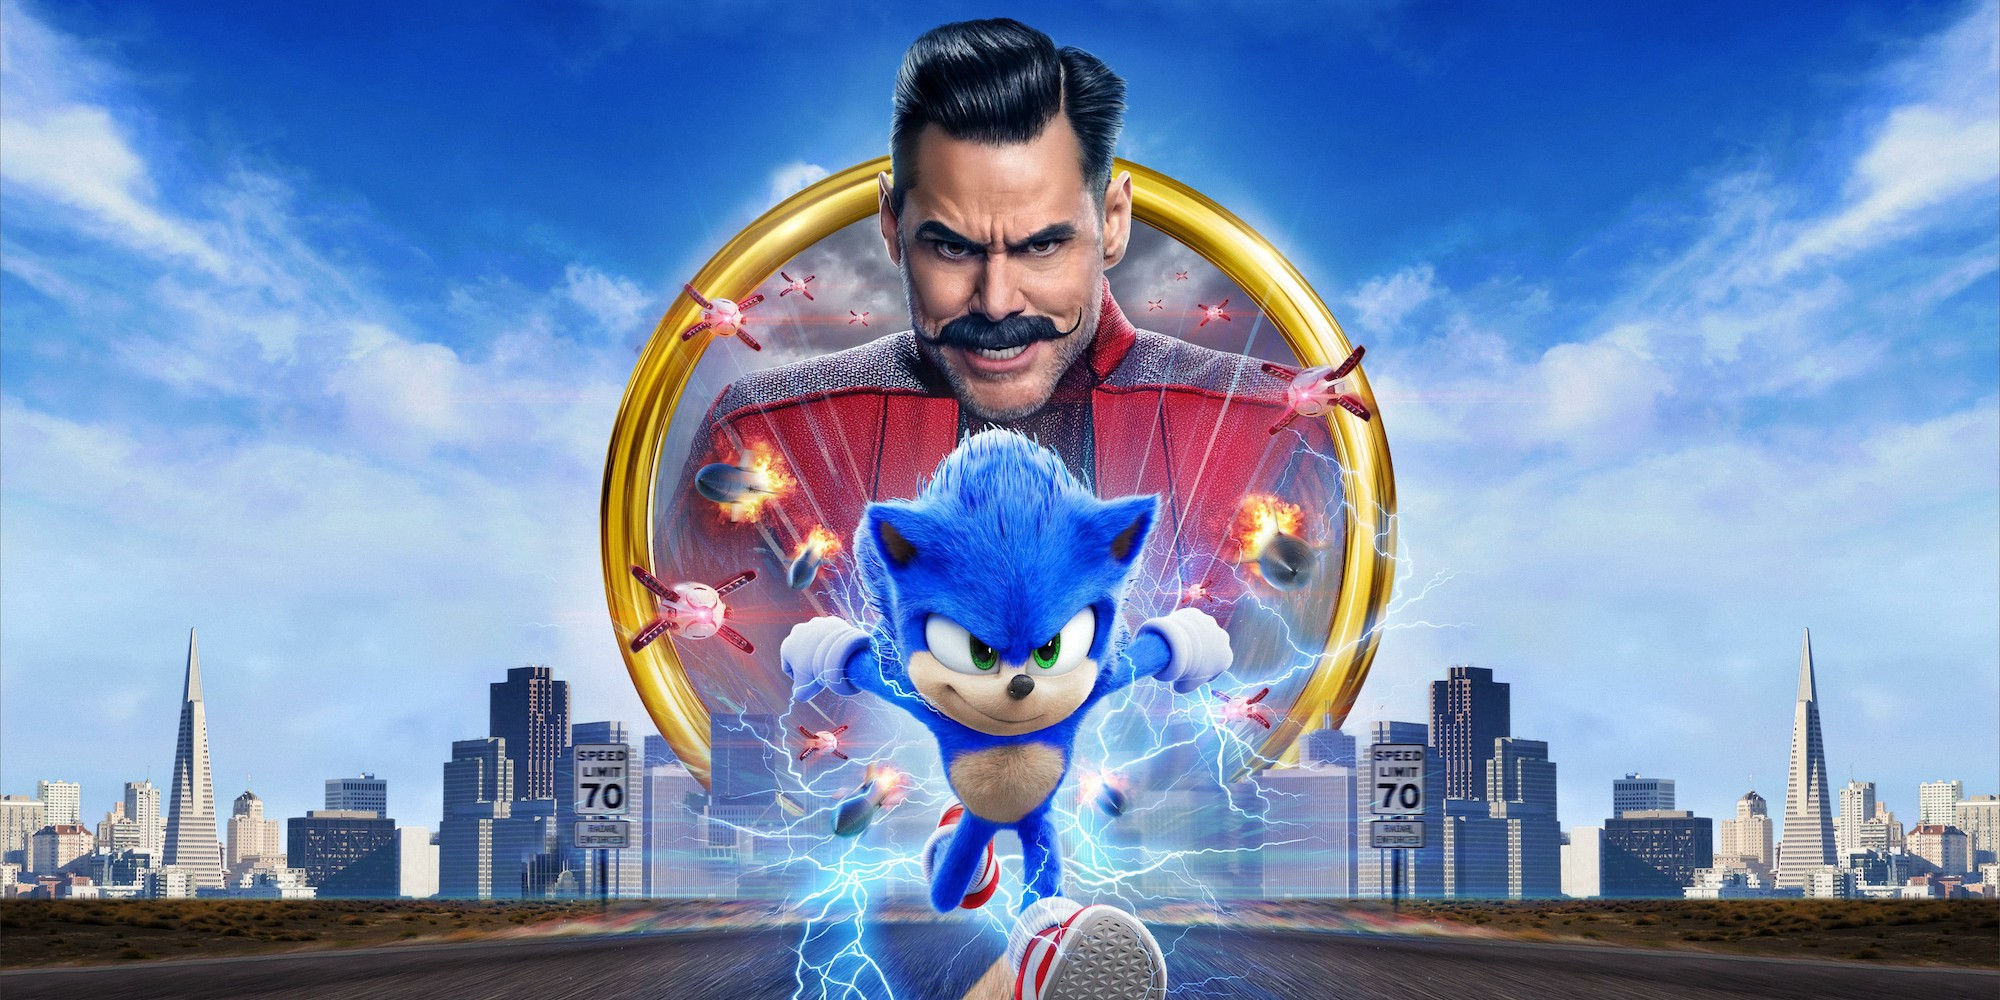 Stream Sonic The Hedgehog for FREE via Amazon or Hulu   20to20Toys